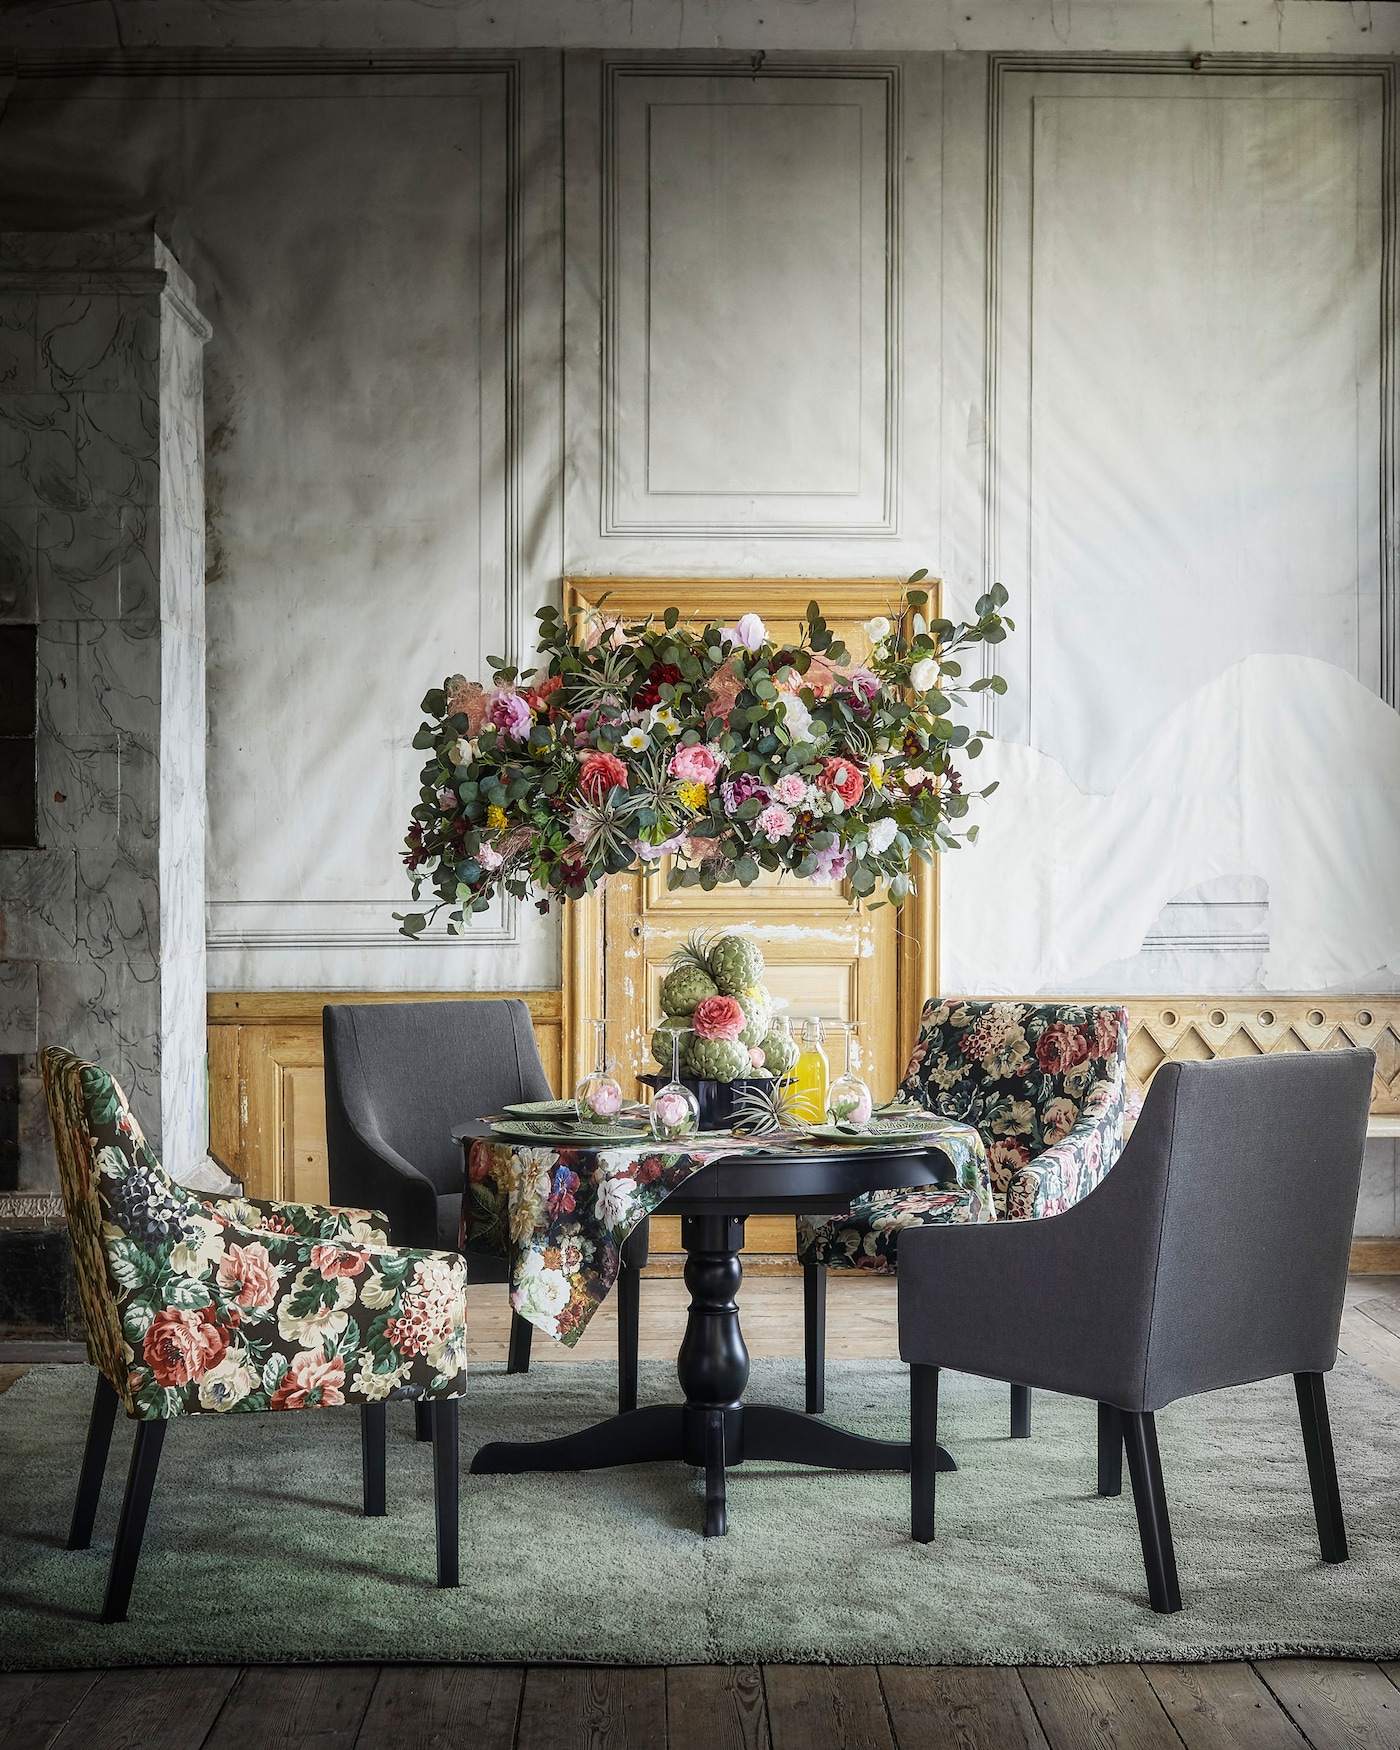 Available from IKEA in various covers like dark grey and a multicoloured floral pattern, SAKARIAS chair with armrests has a padded seat, lumbar support and low armrests that fit under the table.